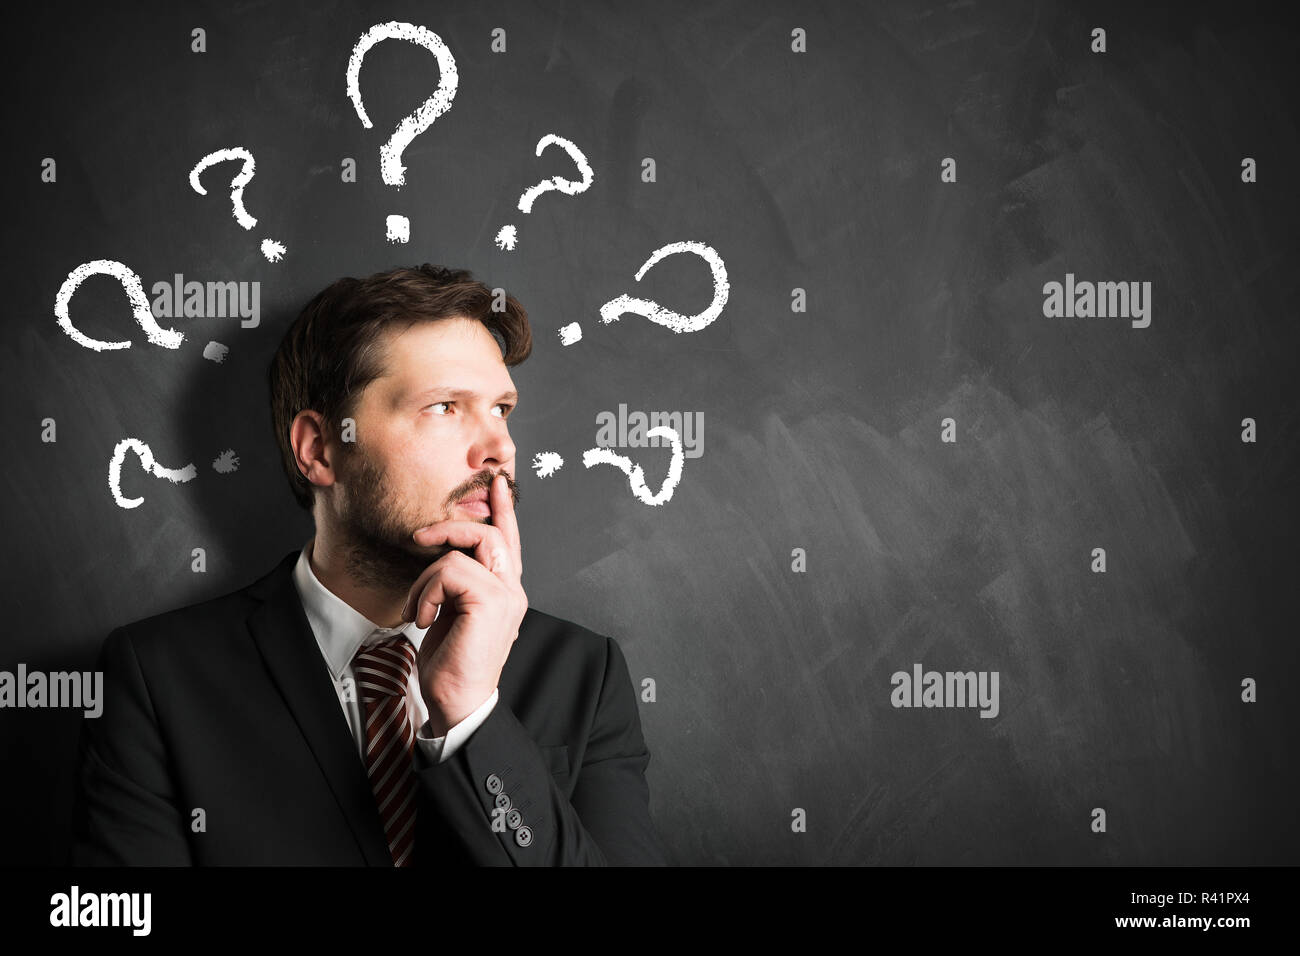 businessman having many questions symbolized as questionmarks on a blackboard over his head - Stock Image